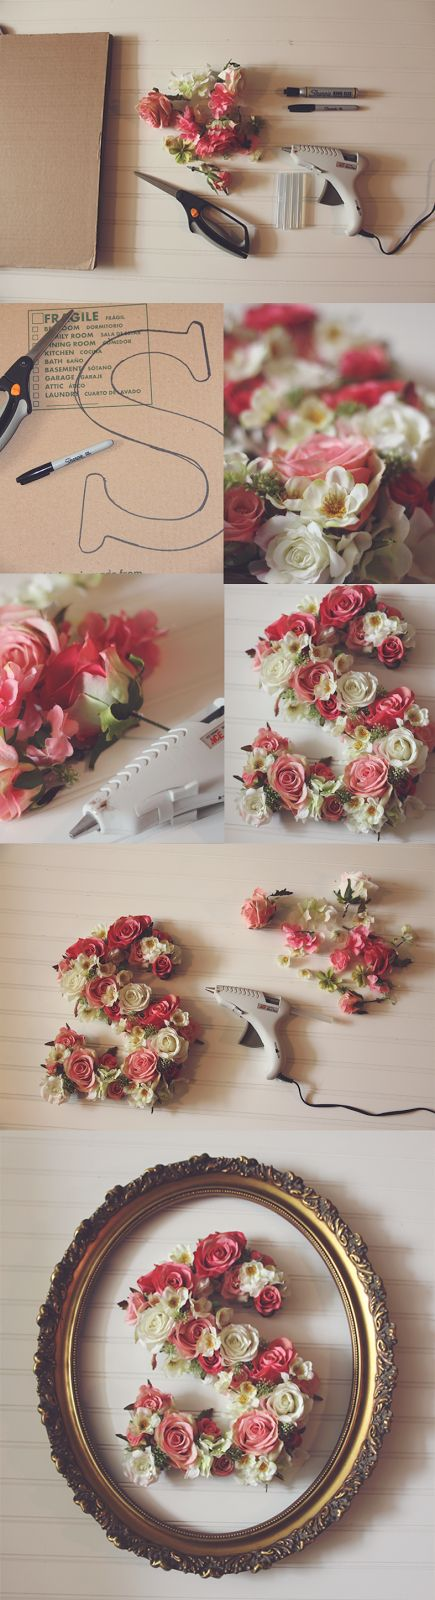 Ridiculously gorgeous DIY floral lettering. Doing this for the nursery!